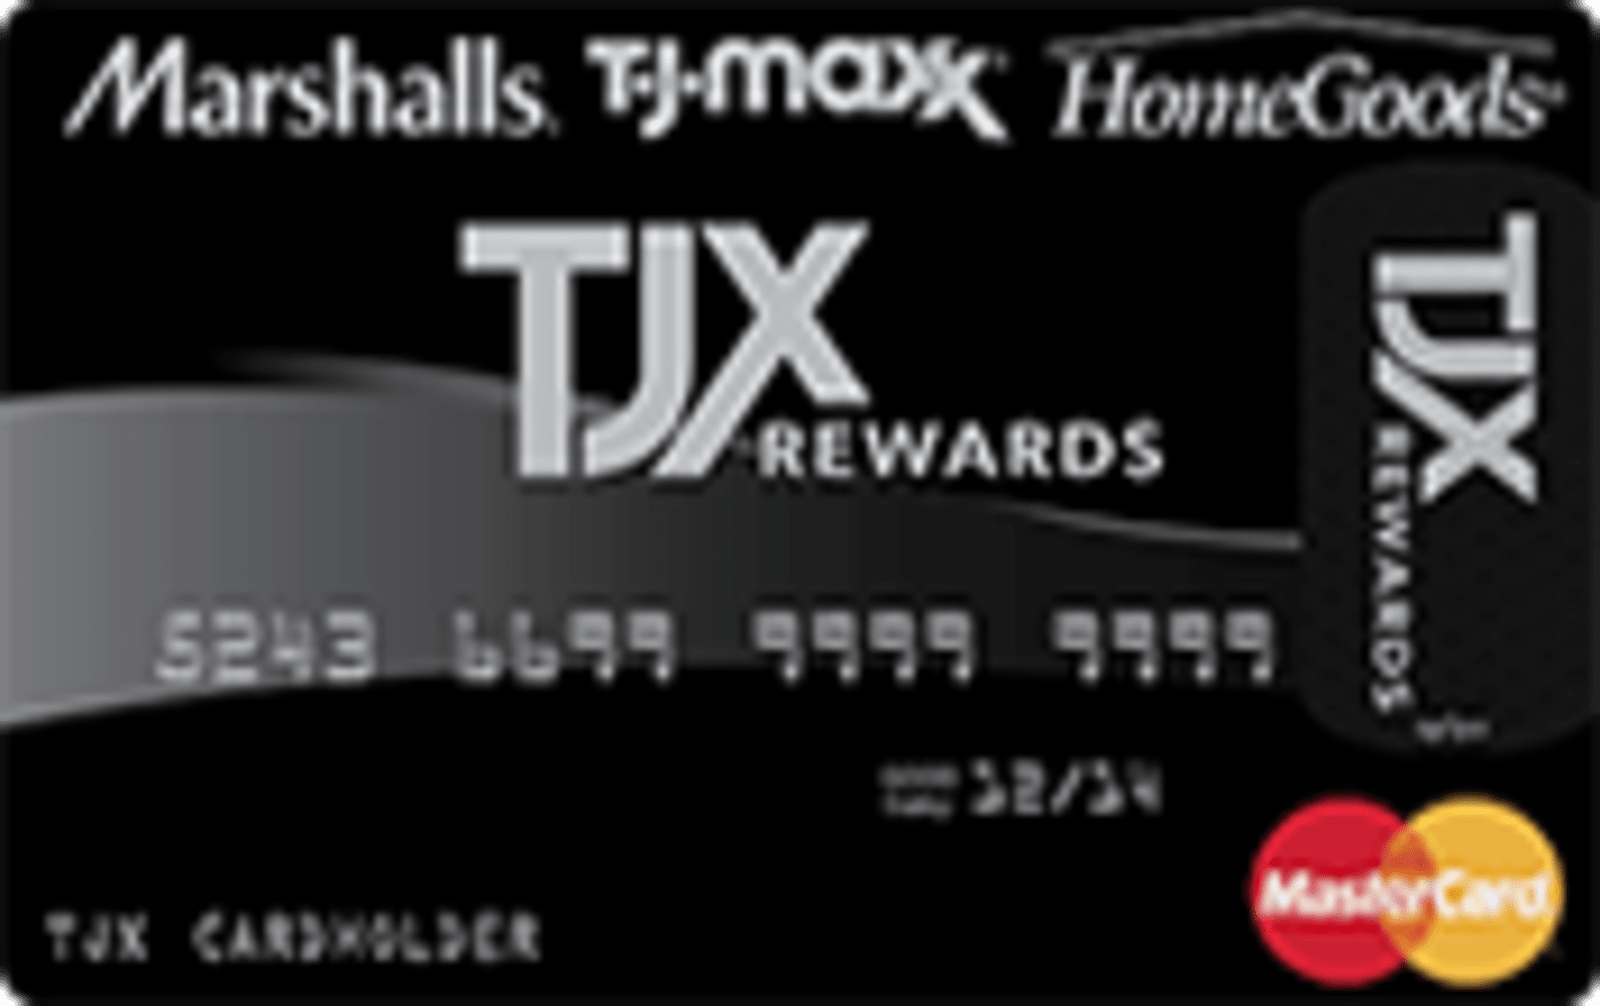 TJ Maxx Credit Card: Is It a Good Deal? | Credit Card Review